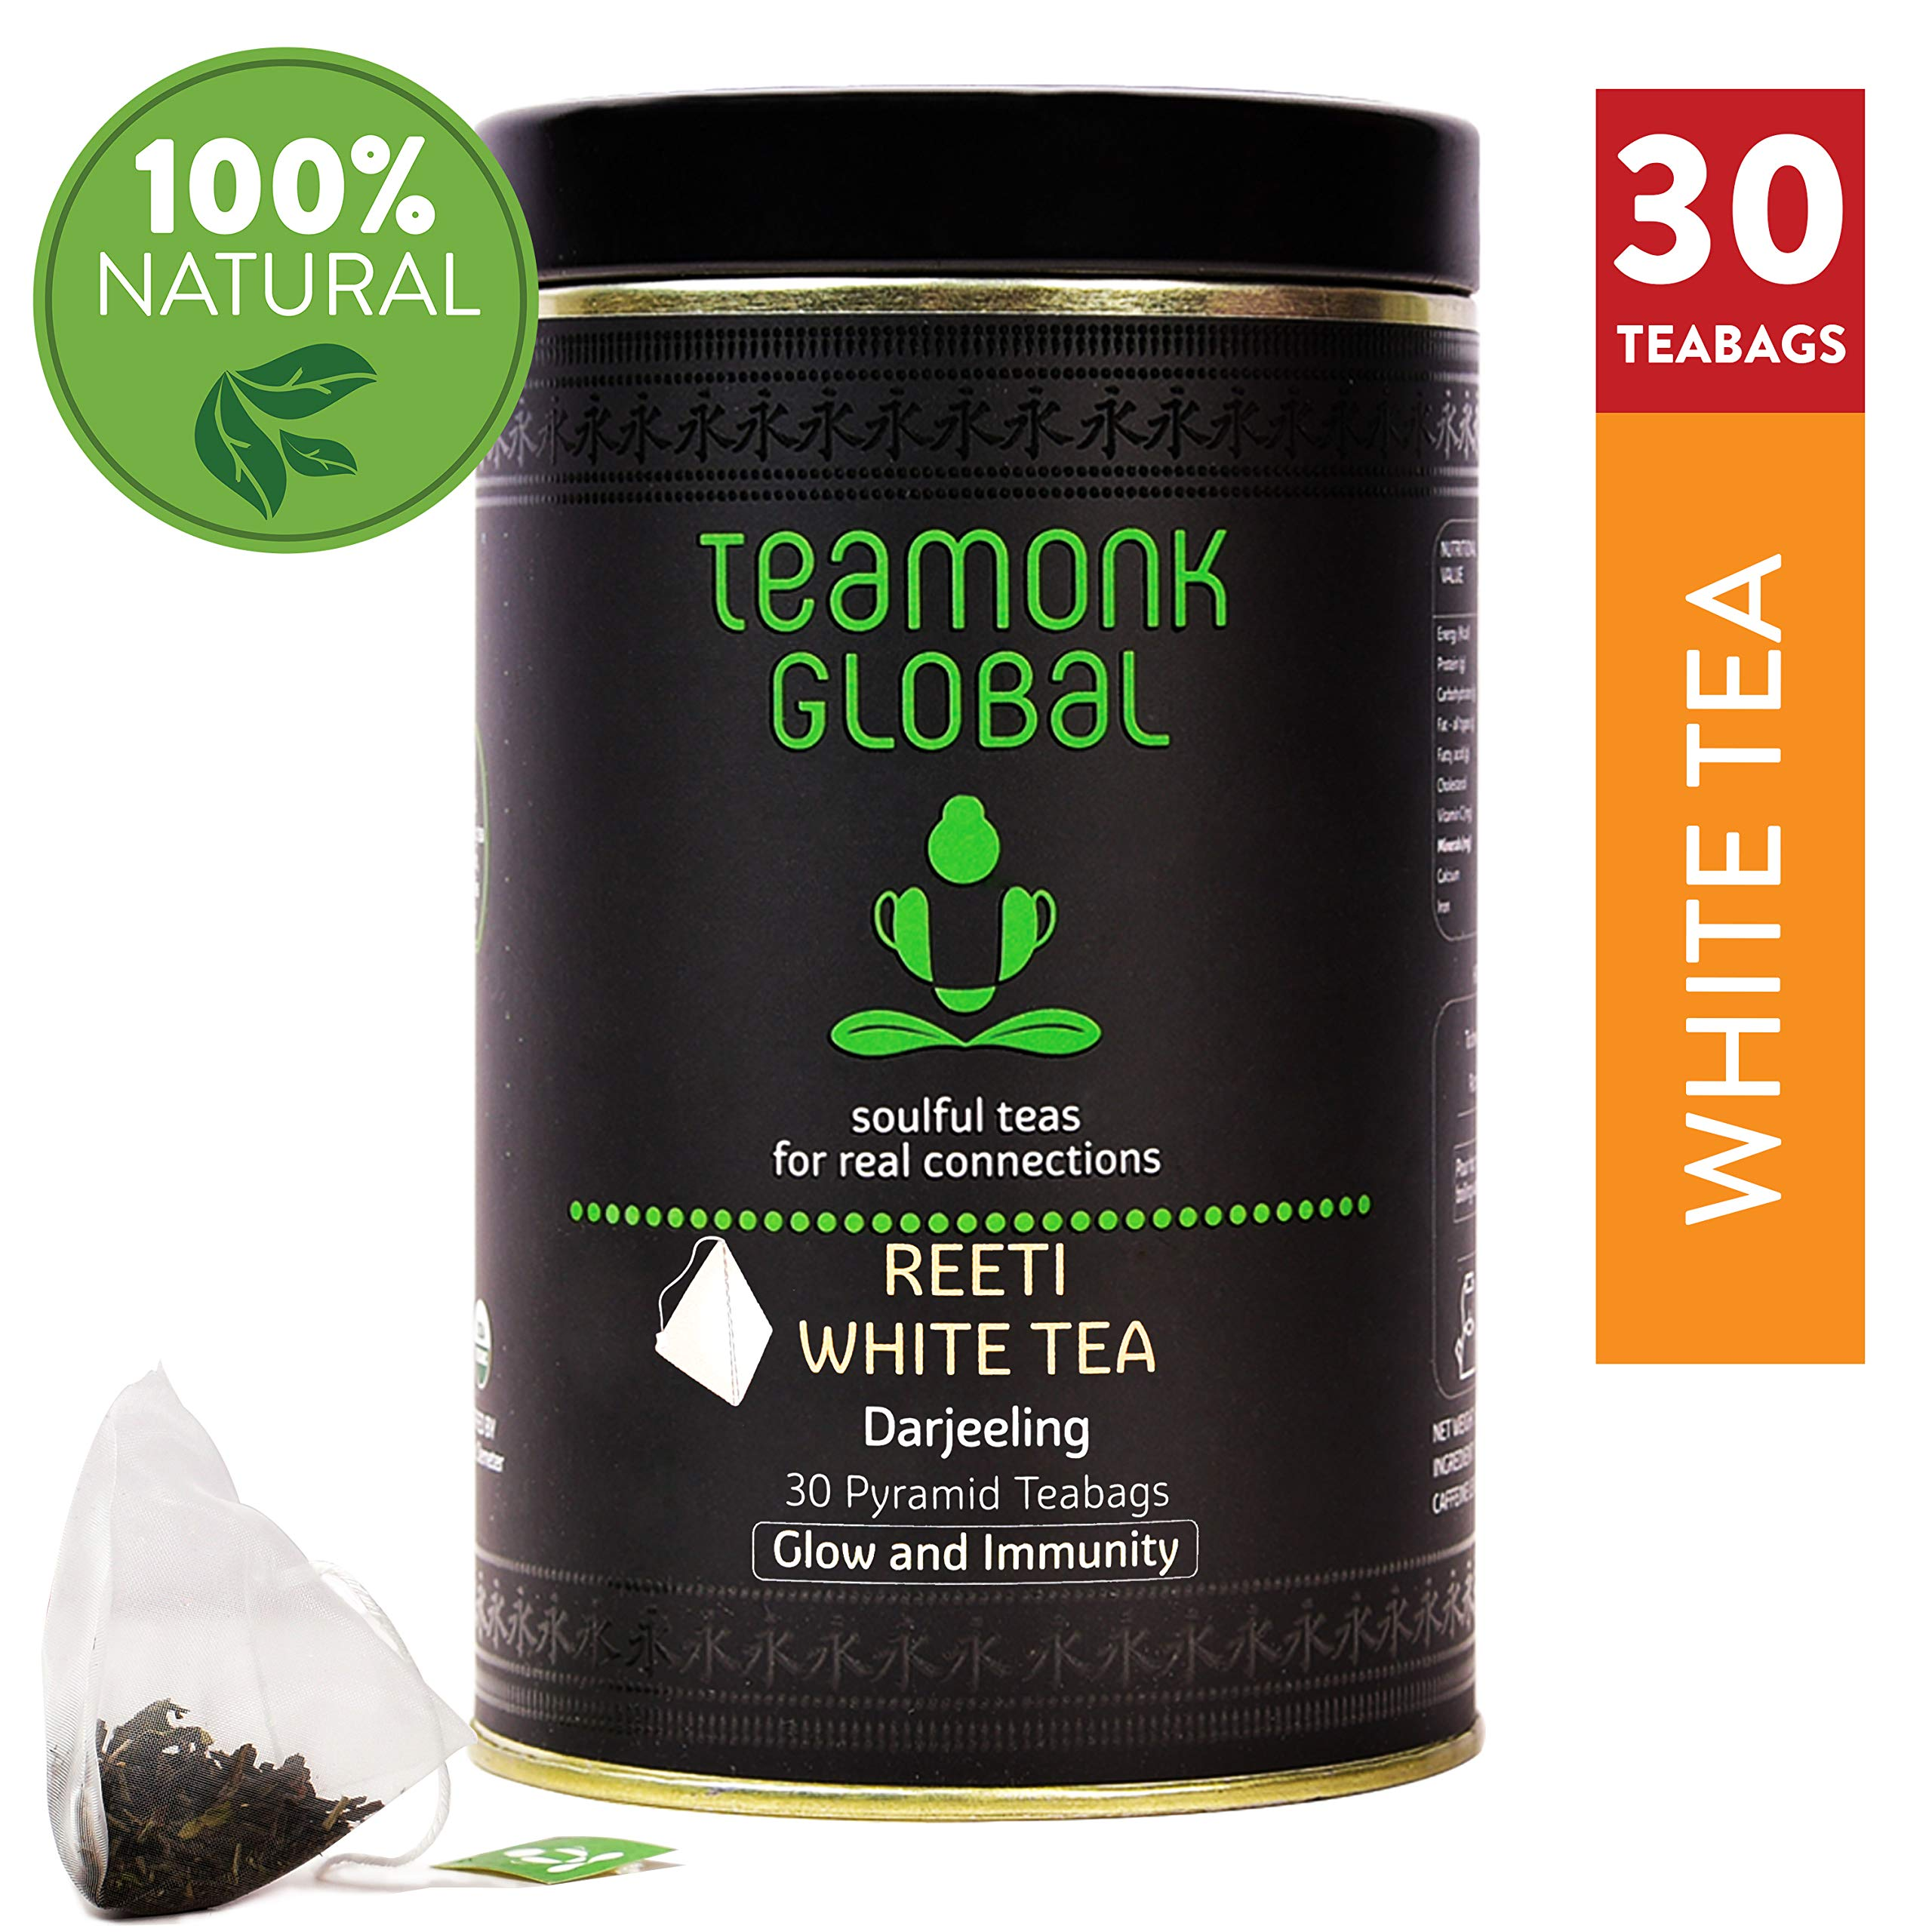 Teamonk Reeti Organic White Tea Bags - 30 Teabags | Powerful Antioxidant Tea | Tea for Glowing Skin | Immunity Boosting Tea | No Additives by Teamonk Global